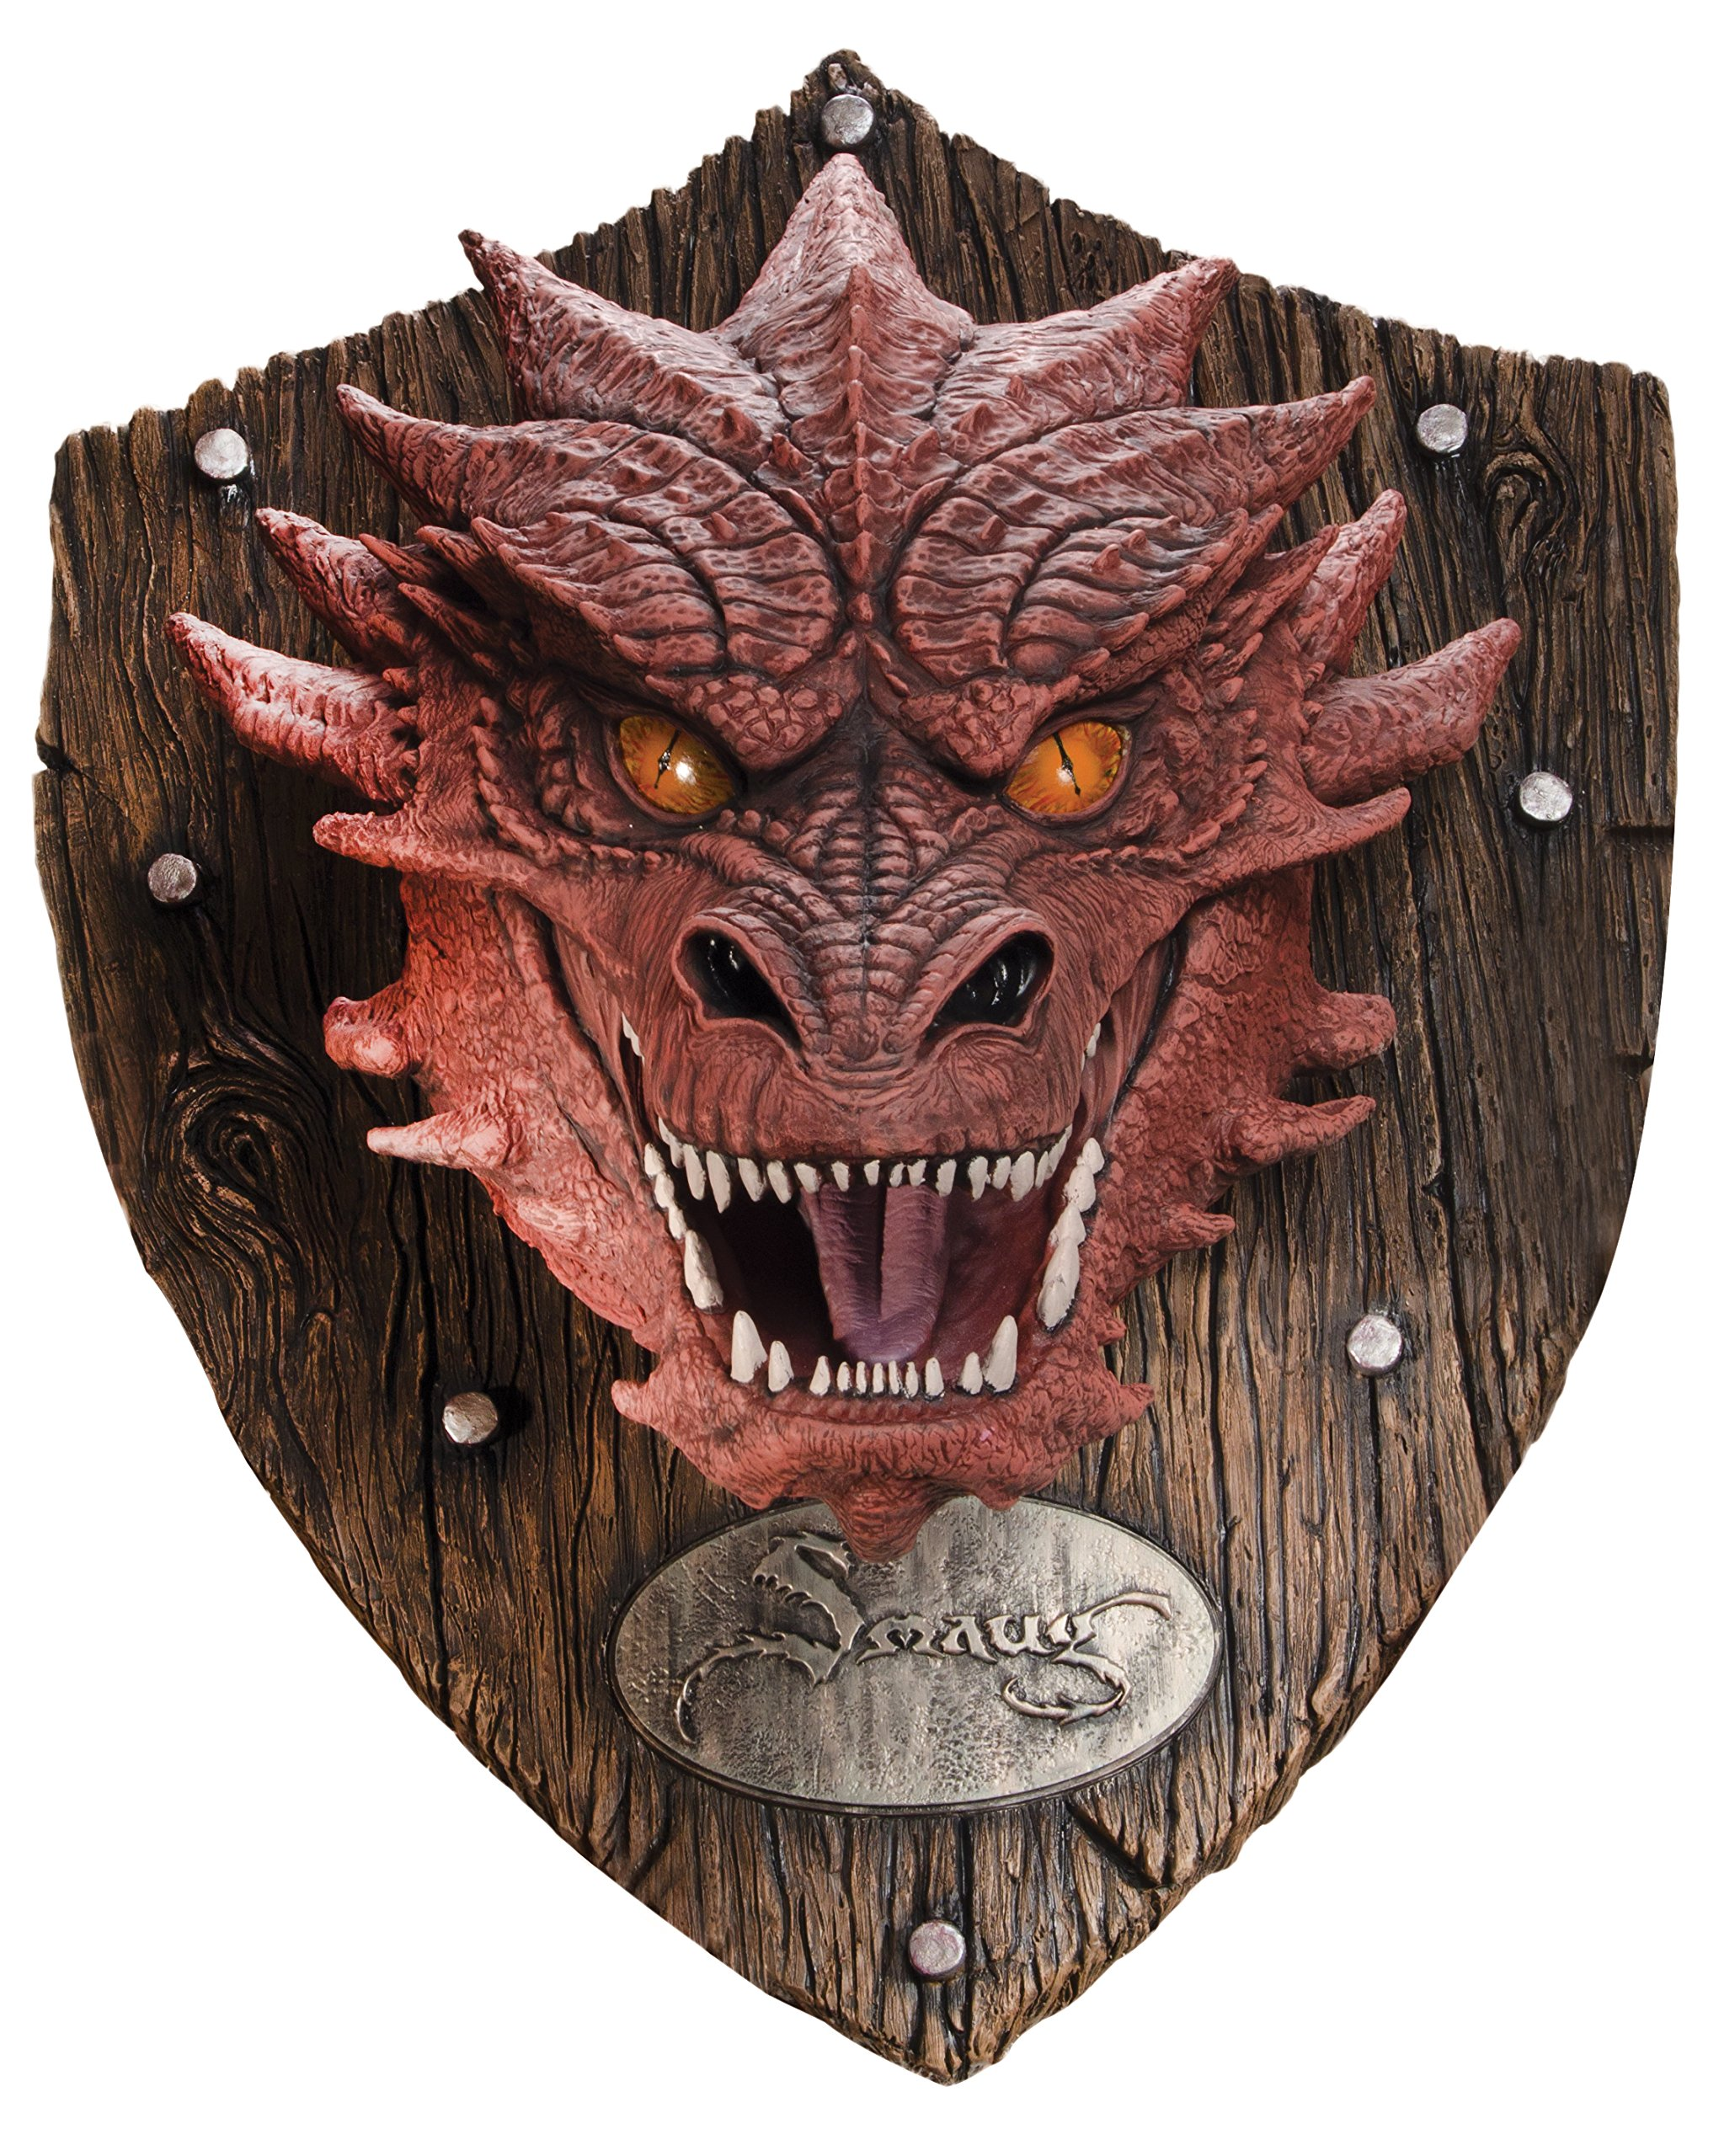 The Hobbit Smaug Wall Decor by Rubie's Costume